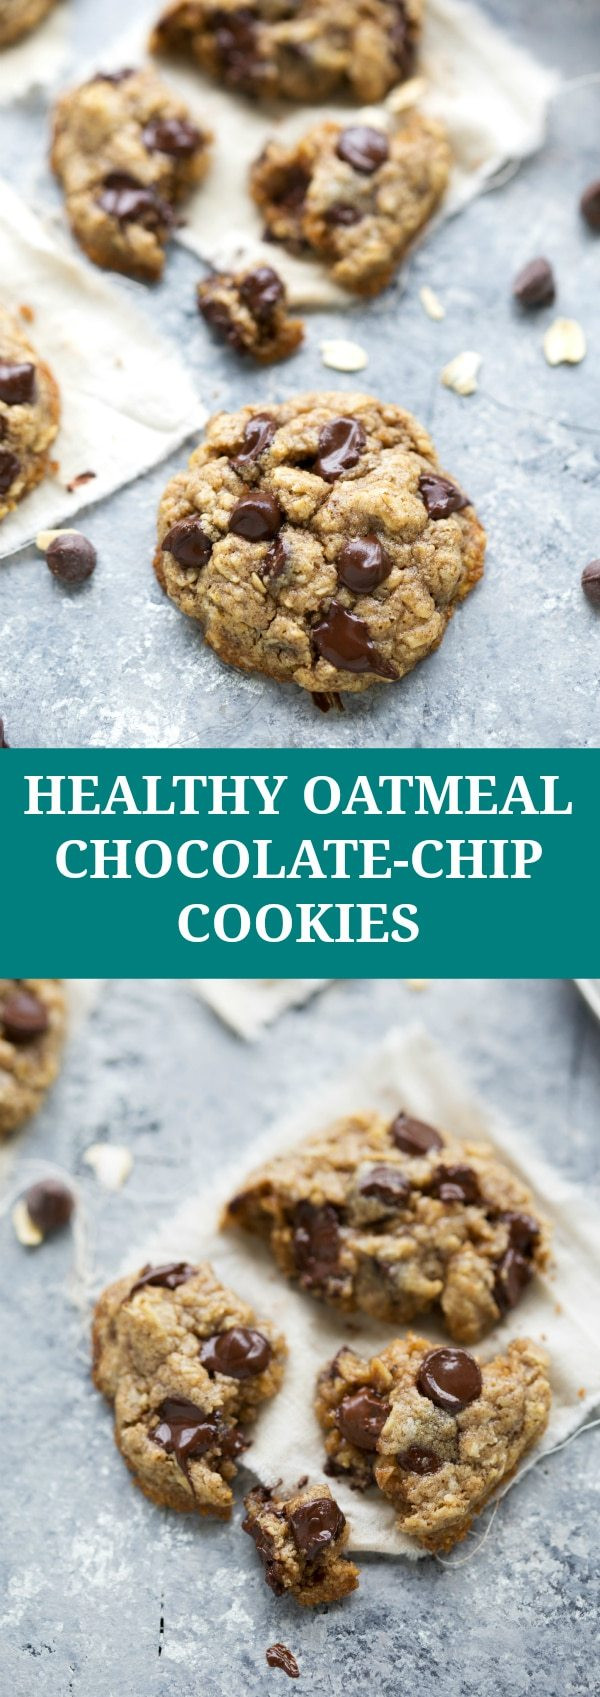 Oatmeal Chocolate Chip Cookies Healthy  The BEST healthy oatmeal chocolate chip cookies Chelsea